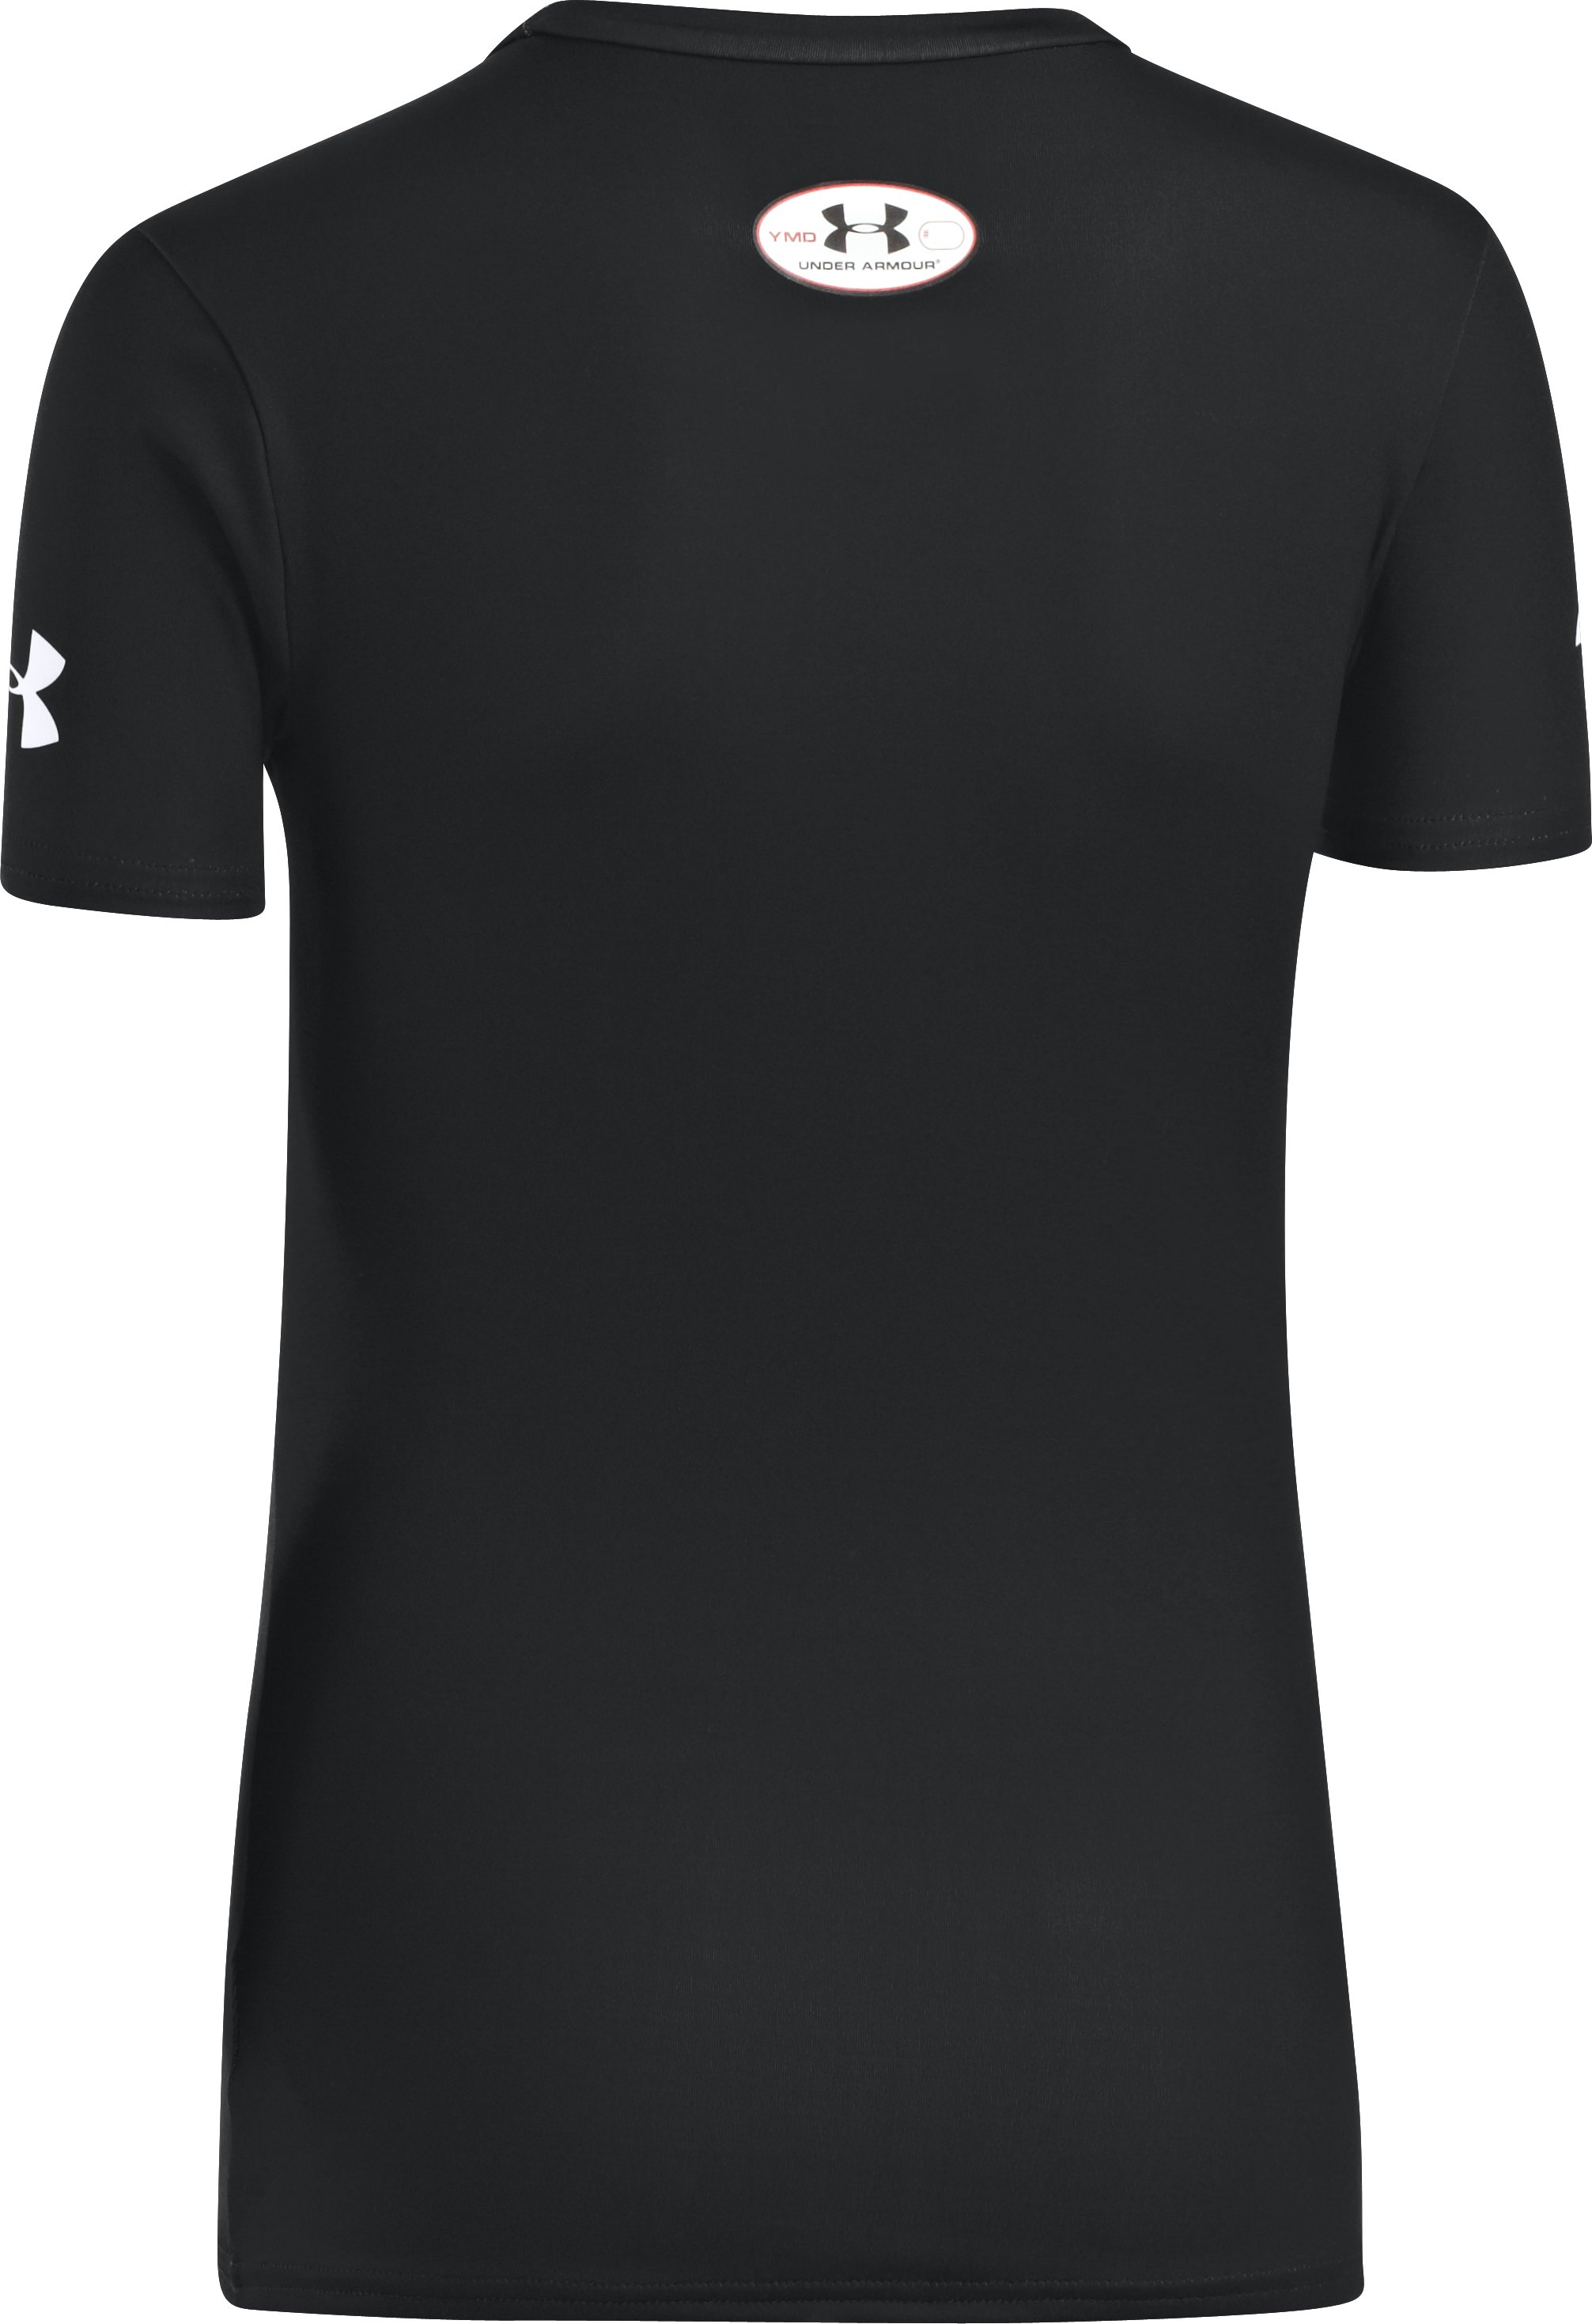 Boys' Under Armour® Alter Ego Fitted Shirt, Black